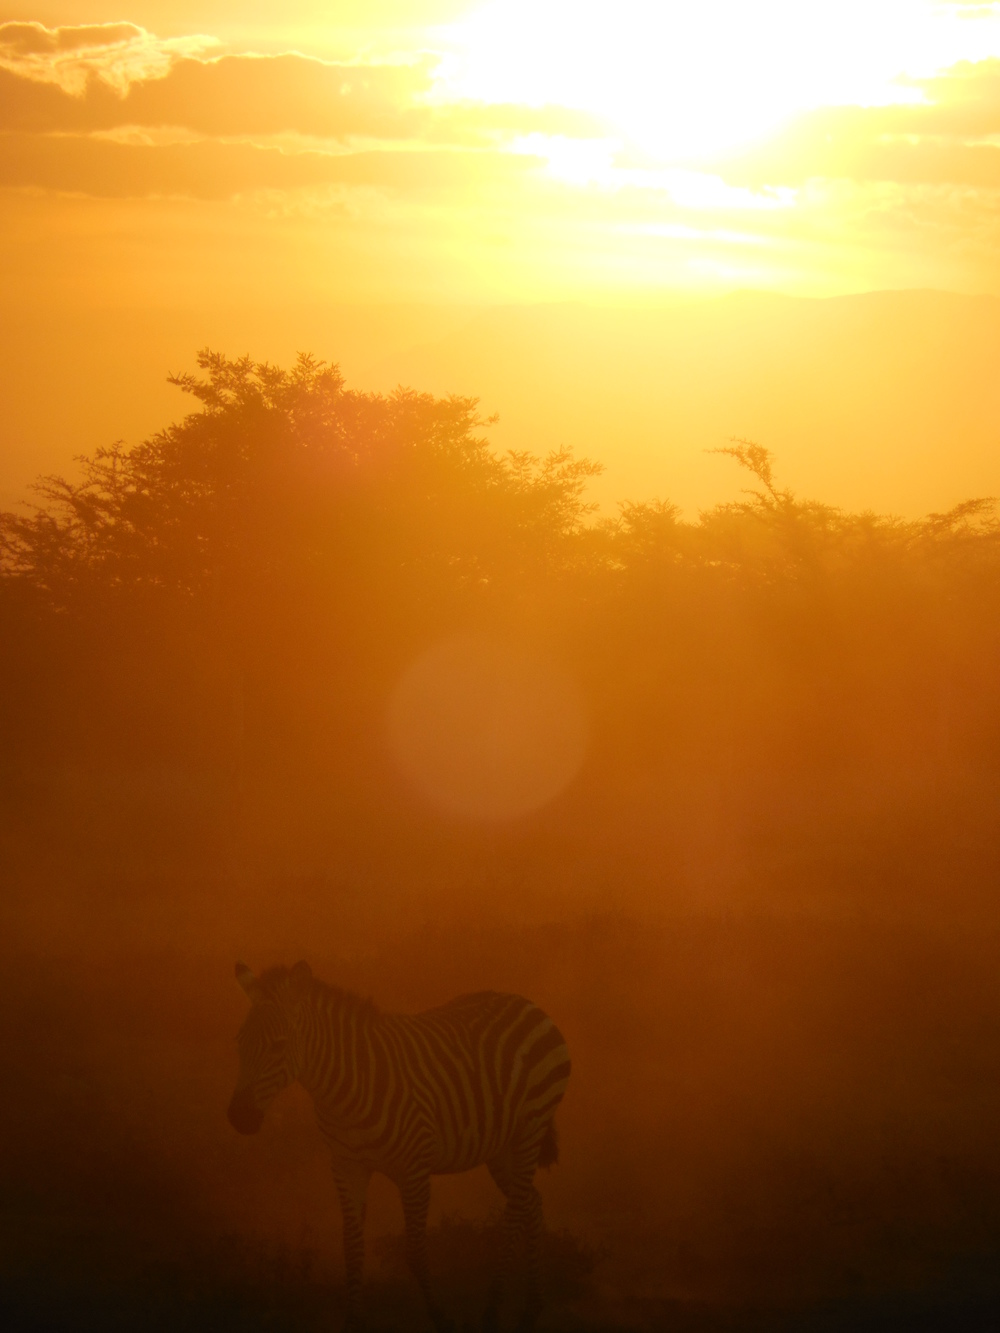 Zebra at Sunset, Amboseli National Park, Kenya 2014 © Flyga Twiga LLC     Member ID: 14-3-1090-5CH